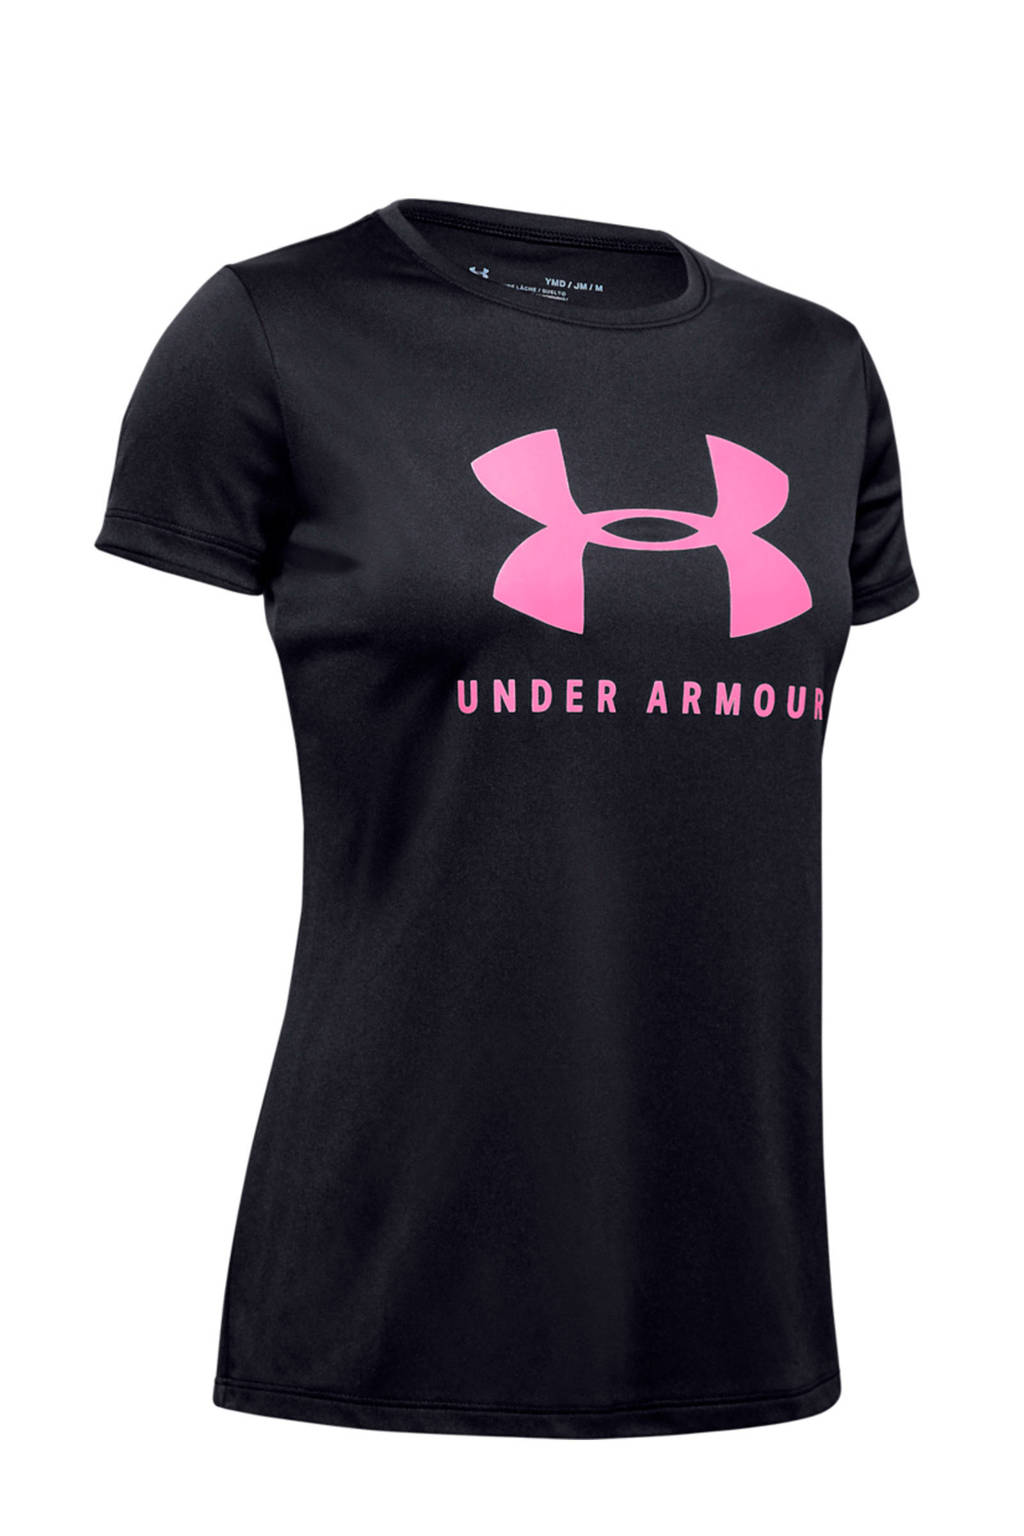 Under Armour sport T-shirt zwart/roze, Zwart/roze